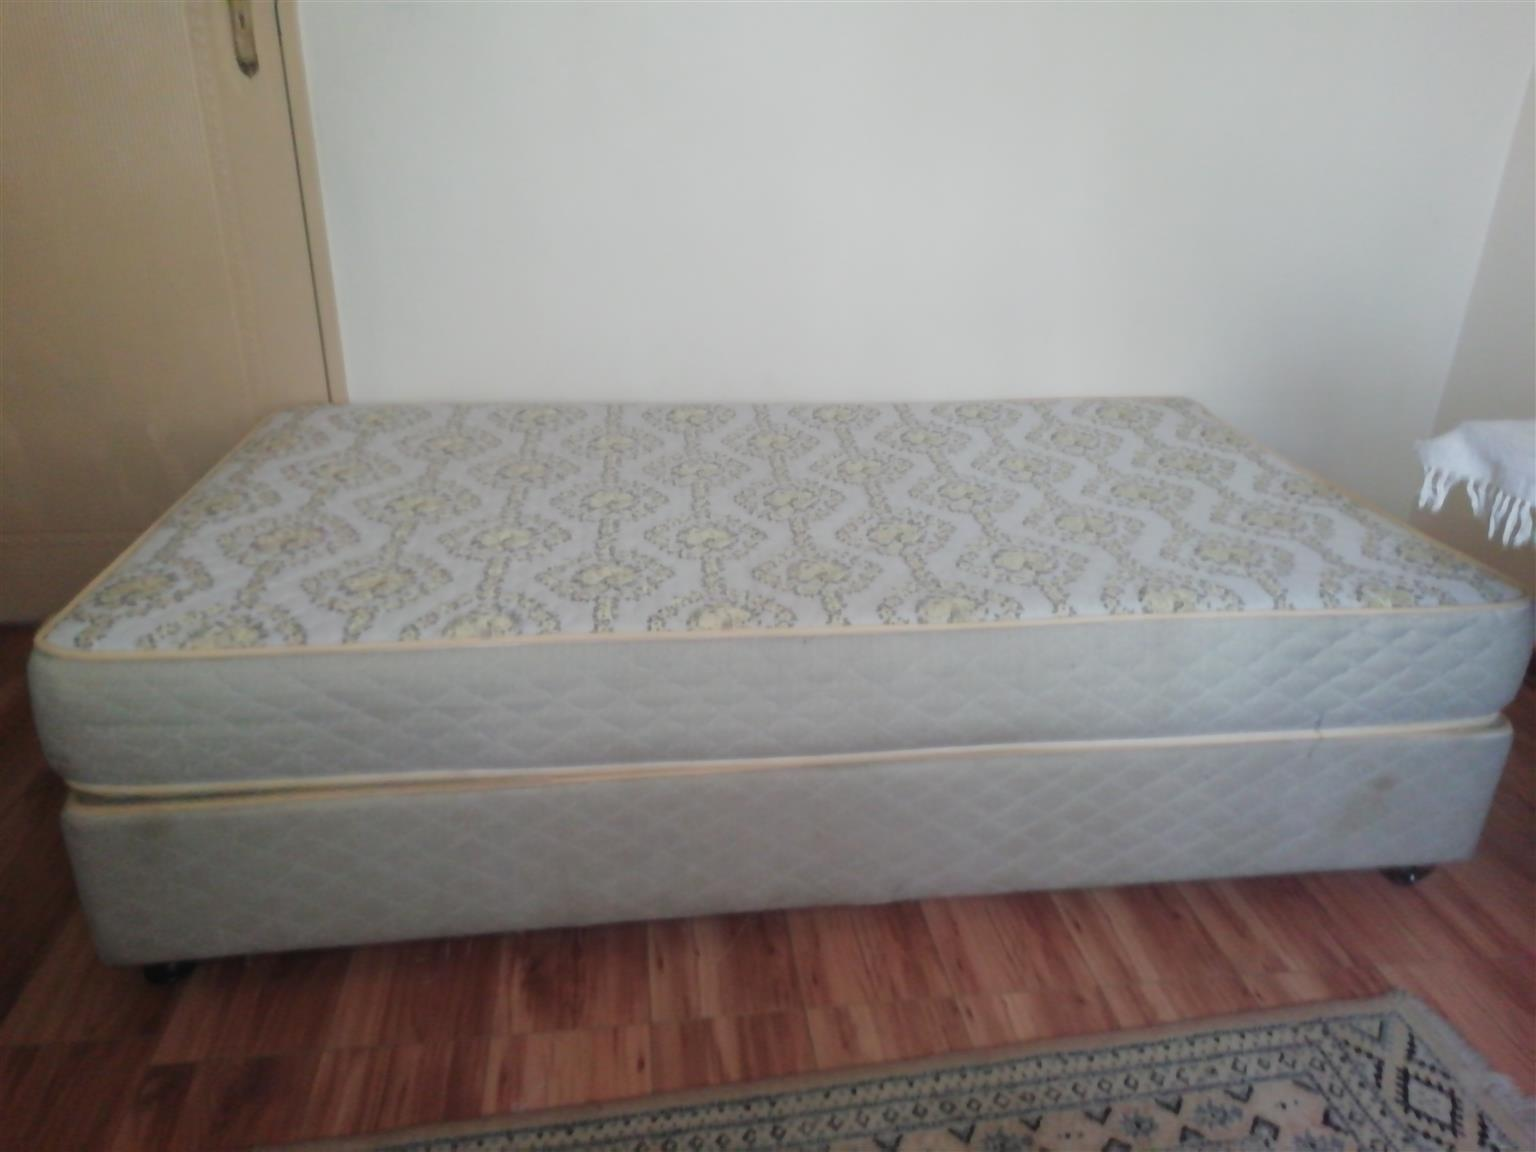 3/4 bed base and mattress for sale